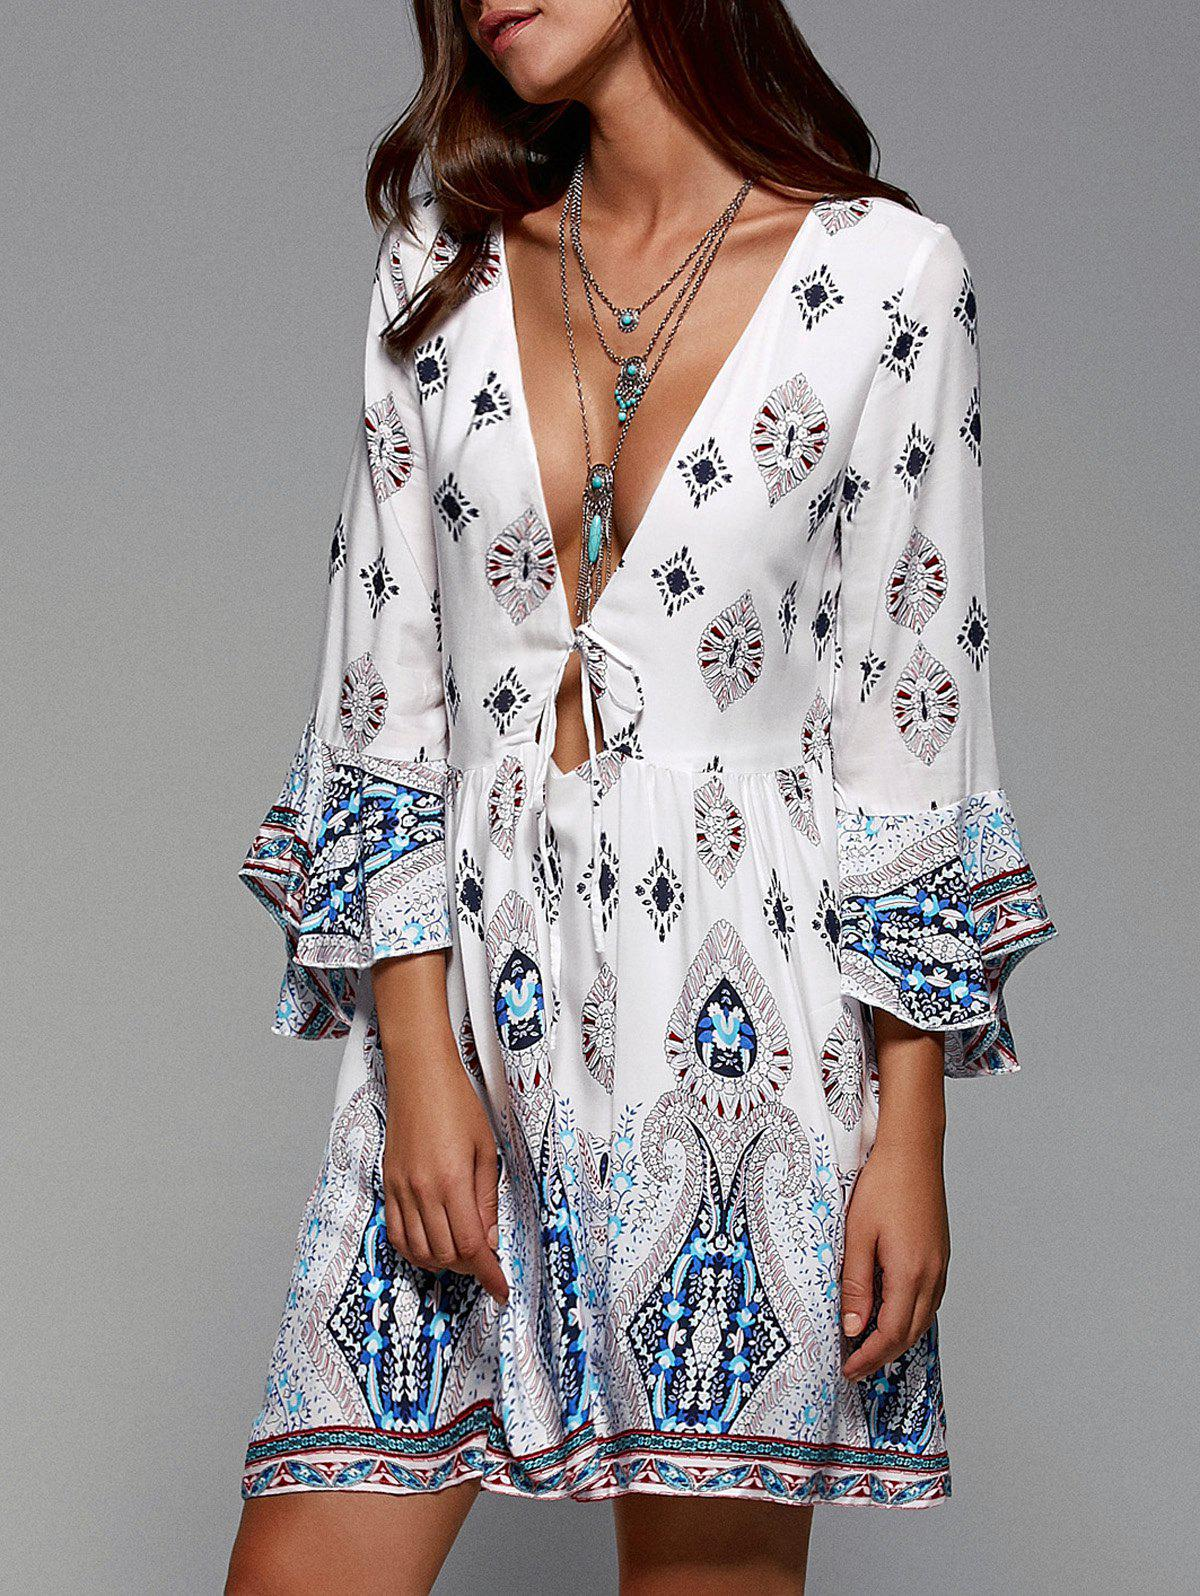 Tribal Print Plunging Neck Flare Sleeve Dress - WHITE XL